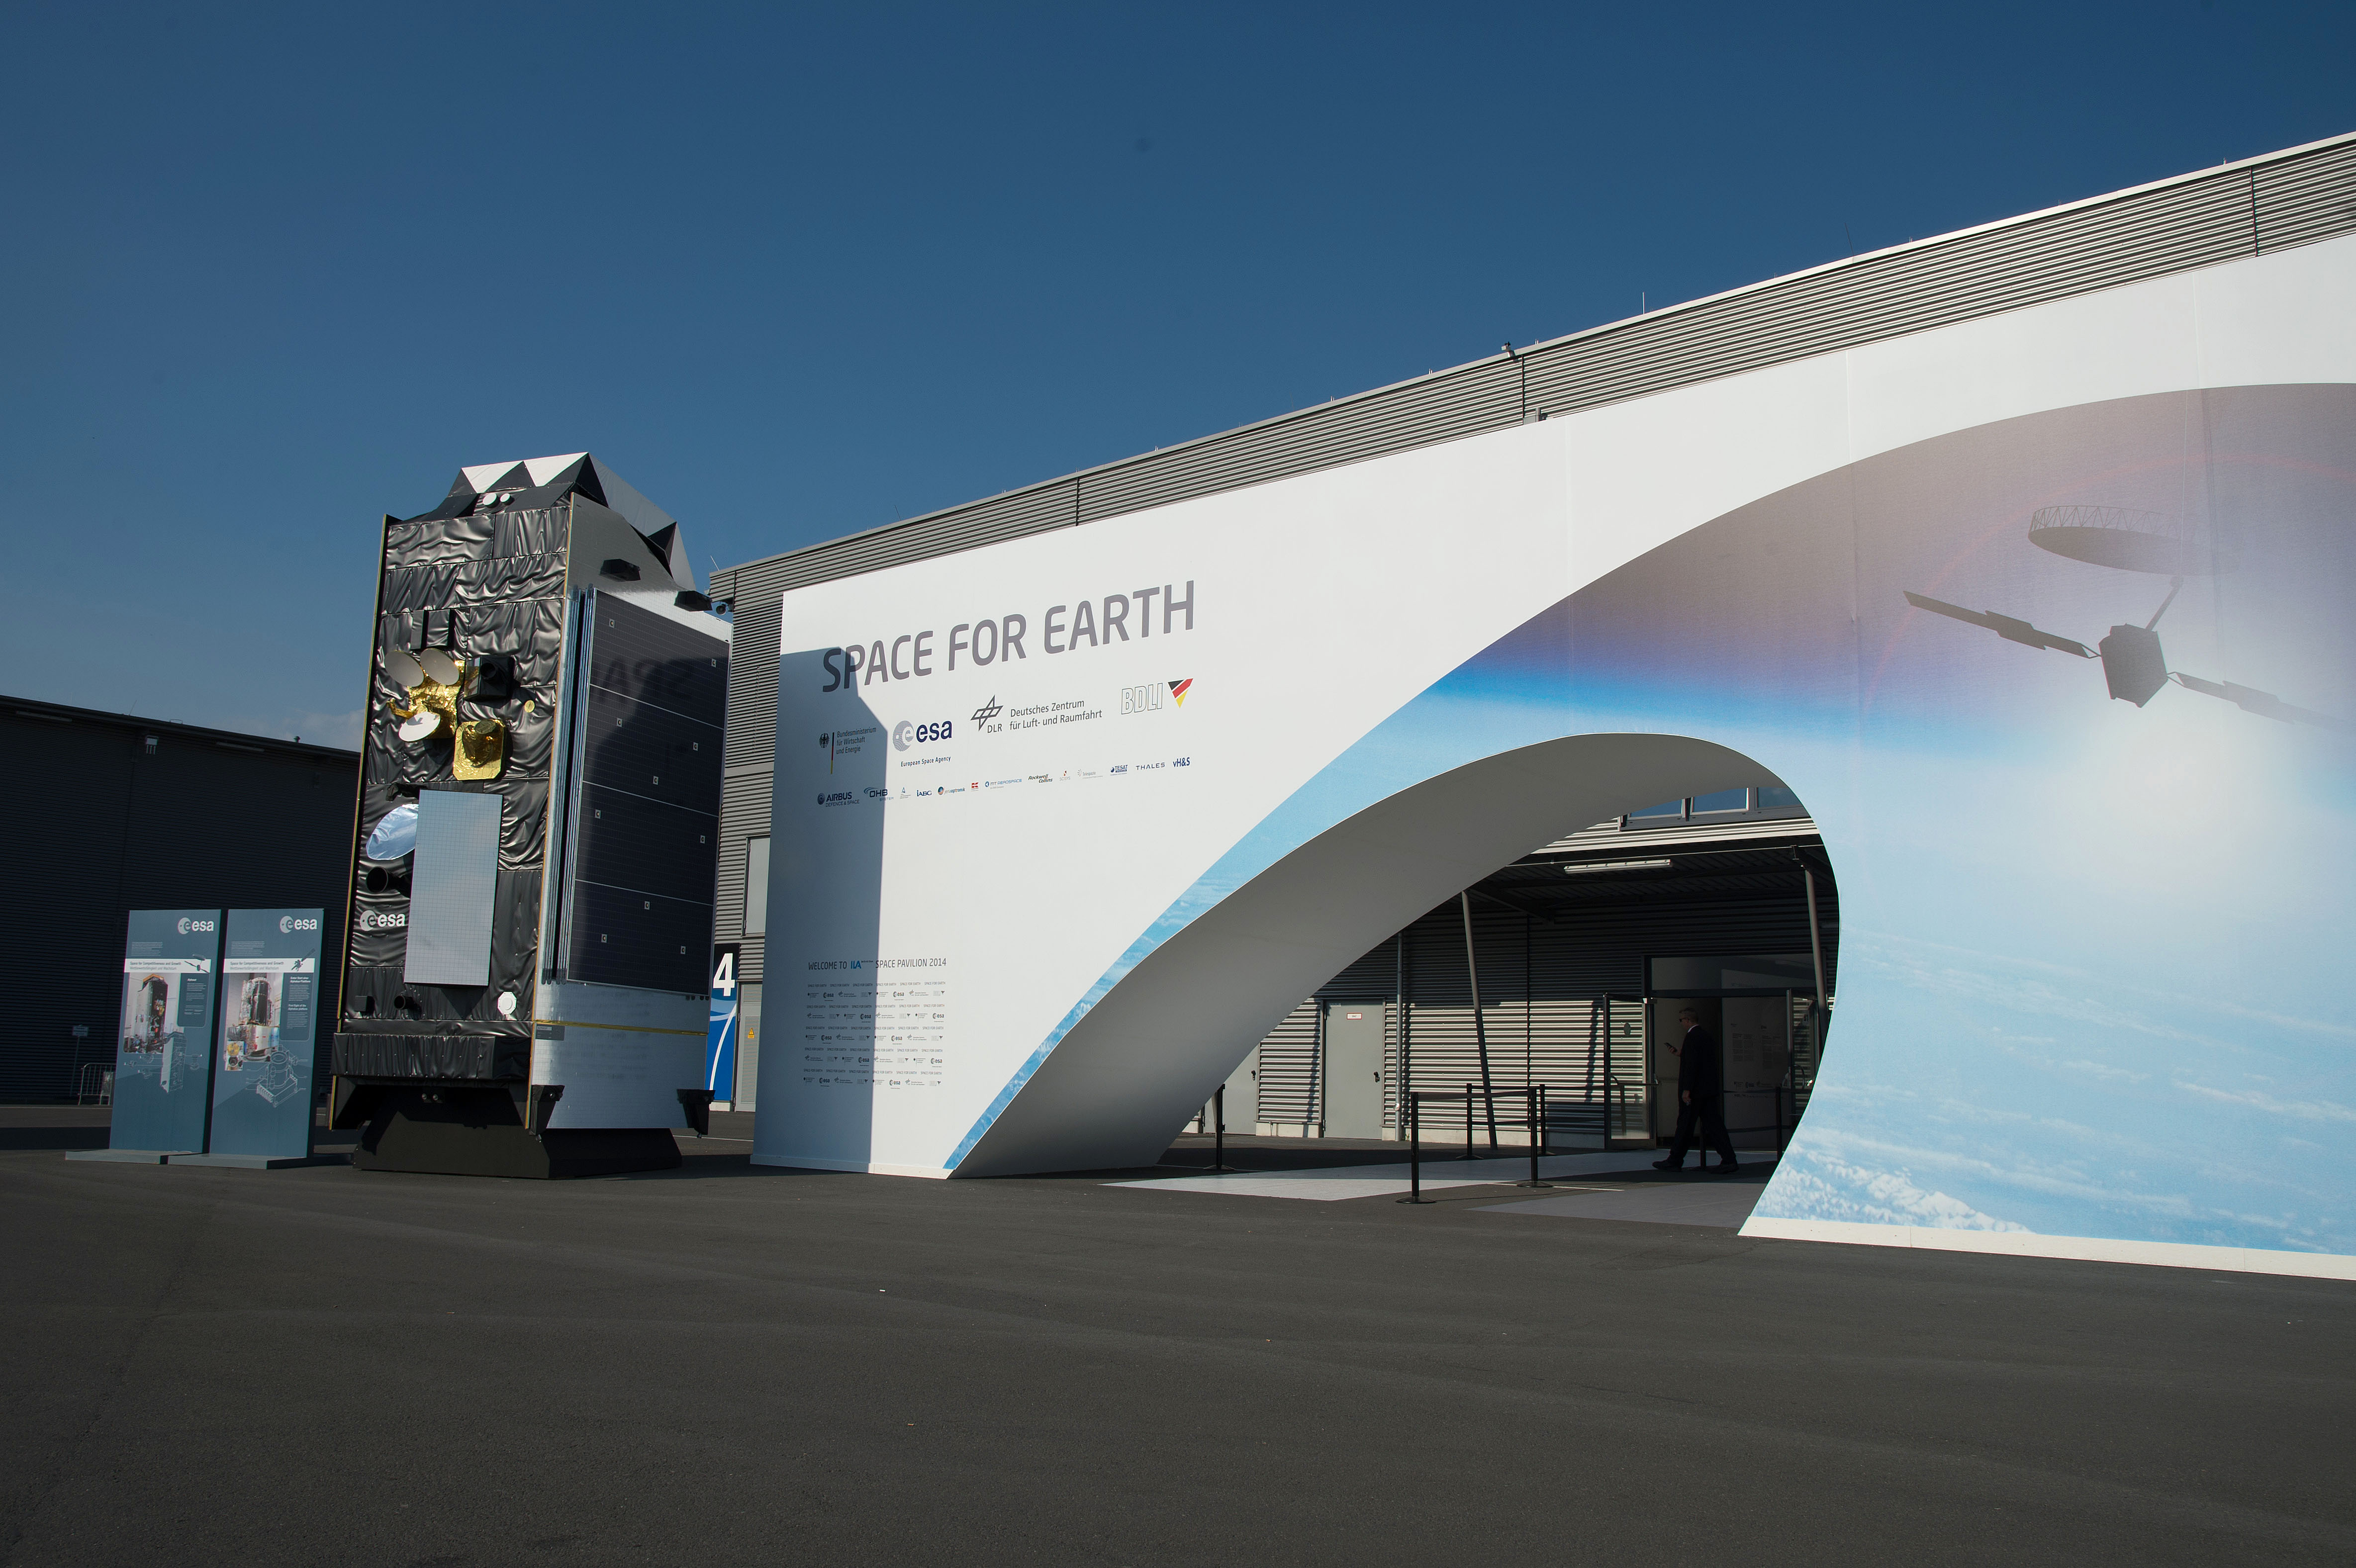 Space in Images - 2014 - 05 - Entrance of the 'Space for Earth ...